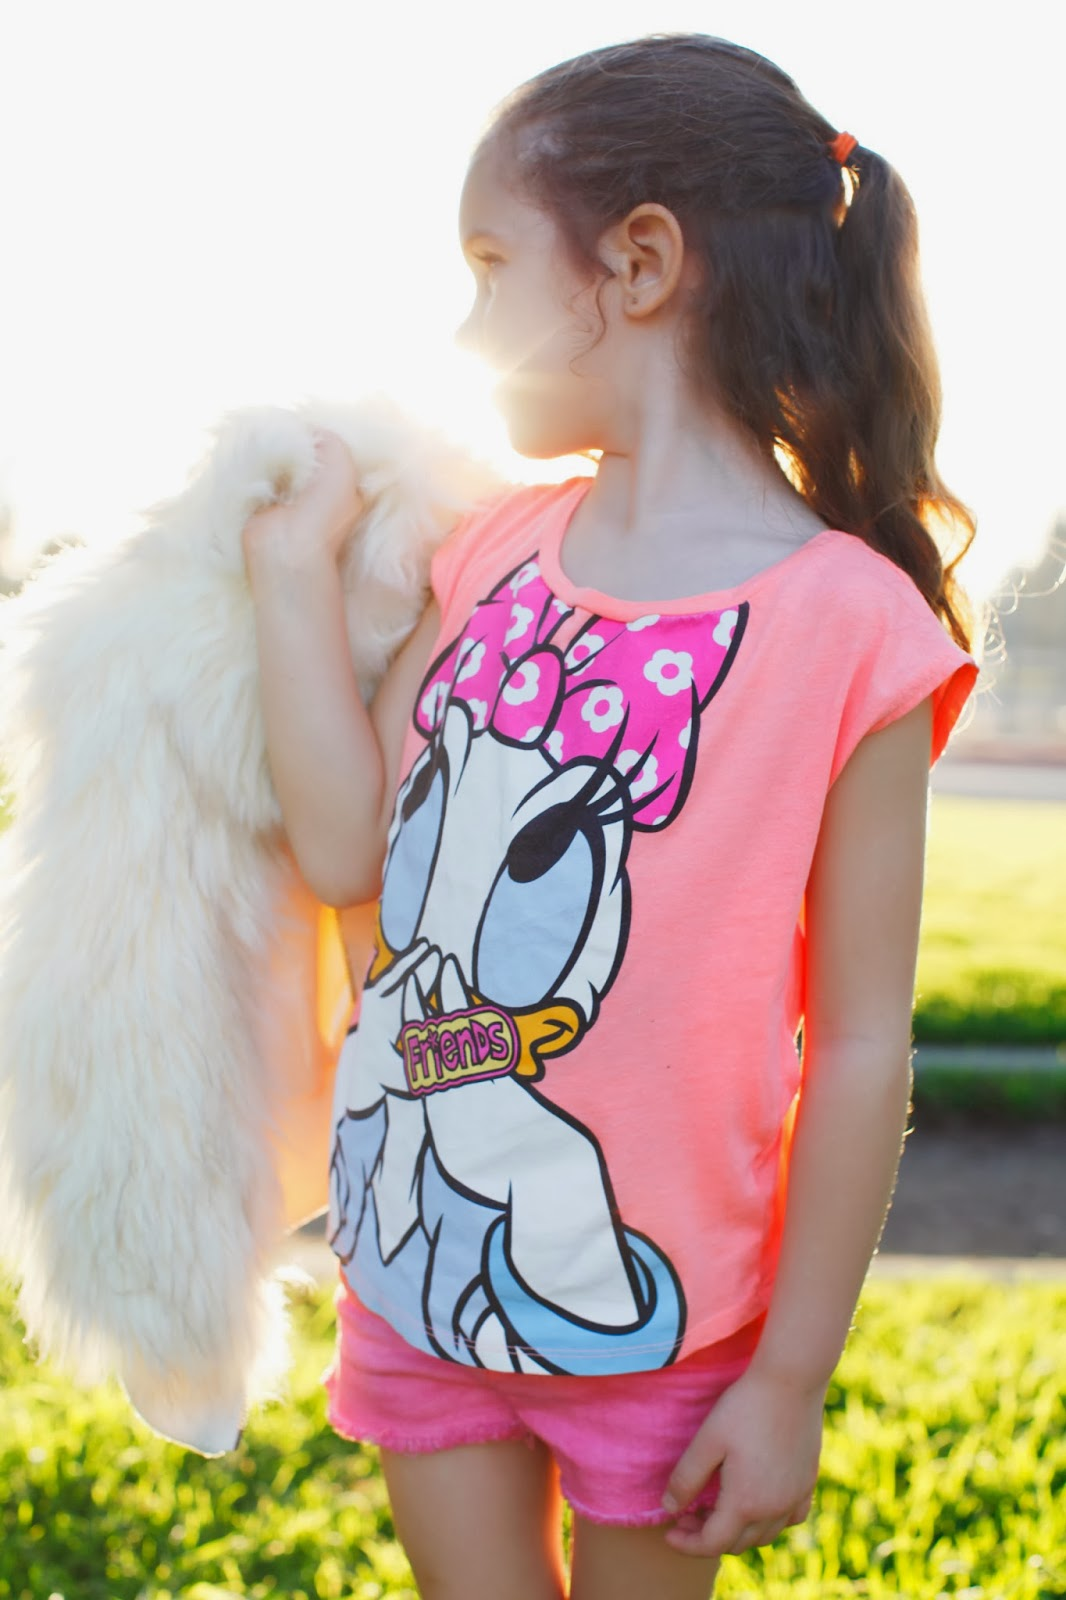 Daisy friends shirt